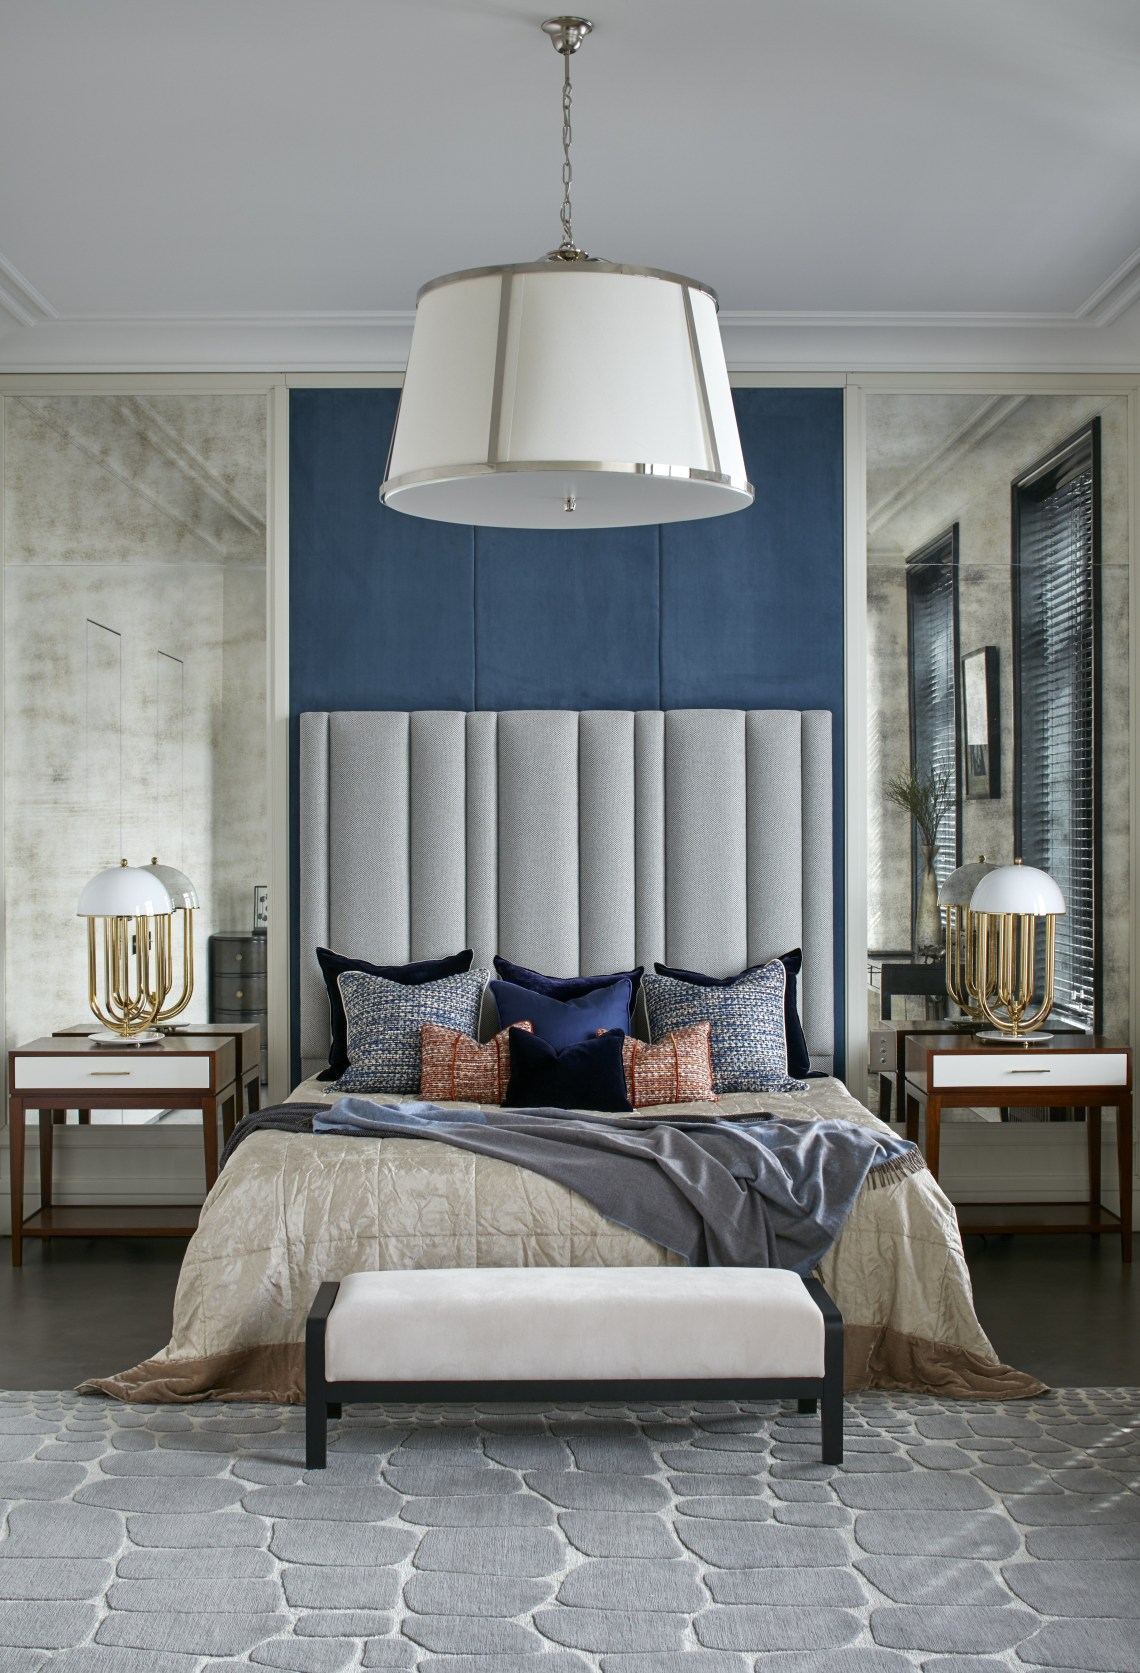 Top Designers Share Their Master Bedroom Interior Design